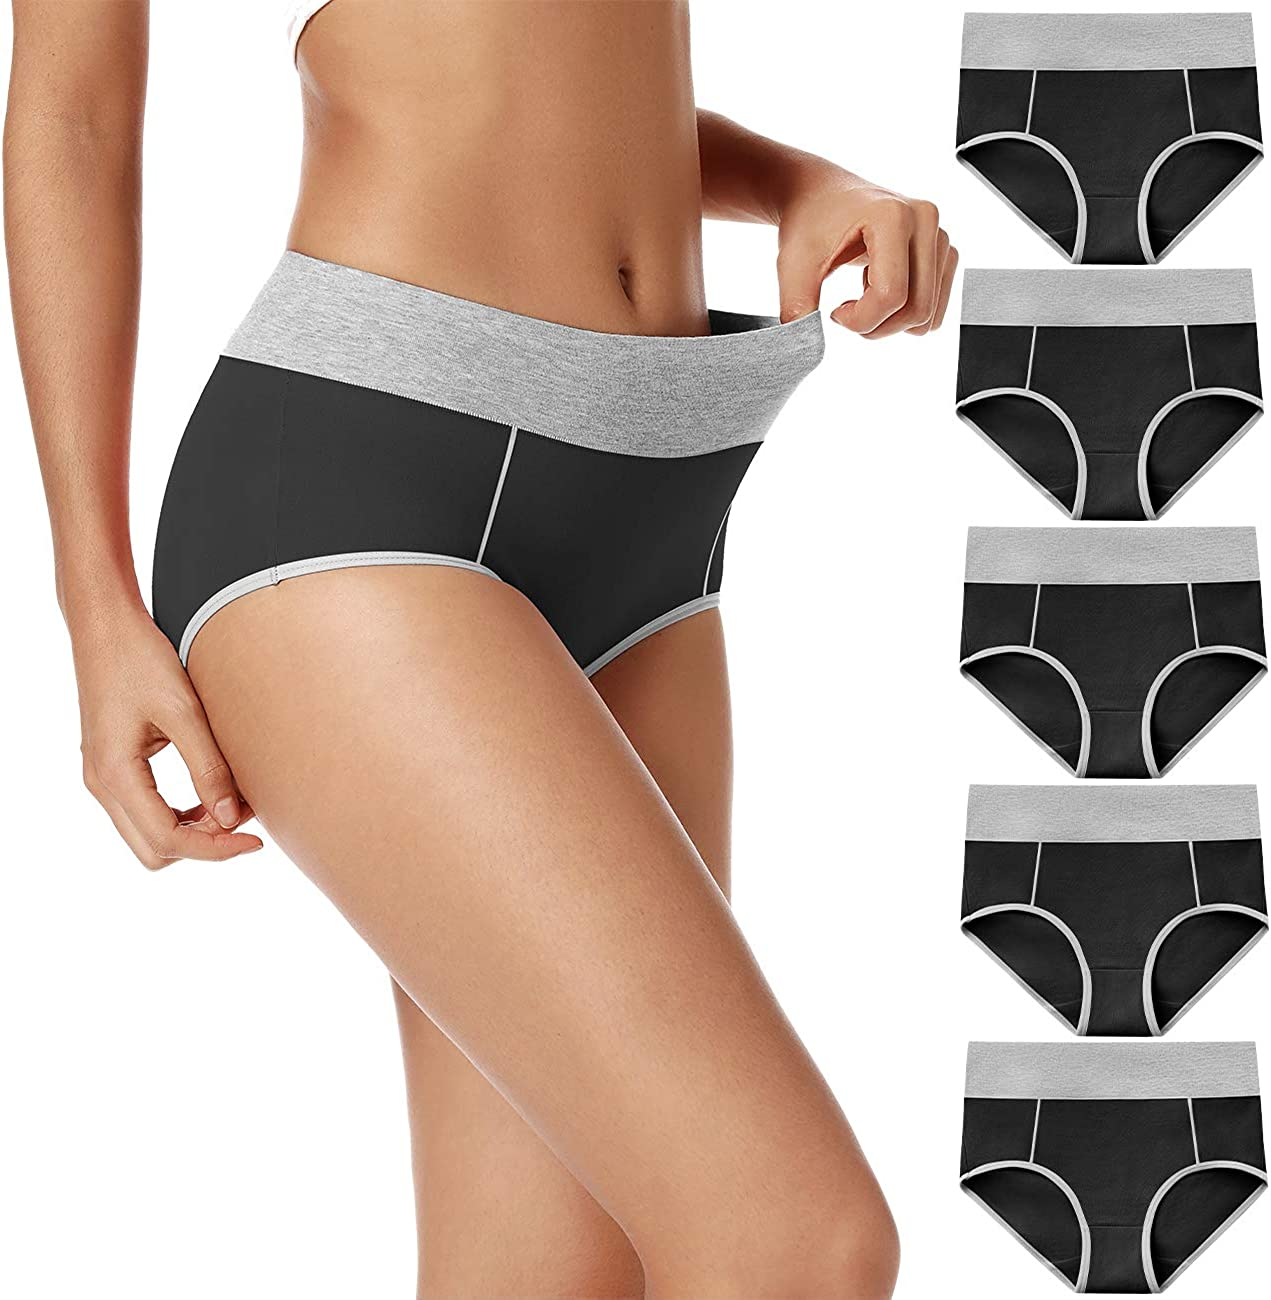 Lot 5-Pack Womens Plus Size Cotton Underwear Panties High Rise Briefs Hipster